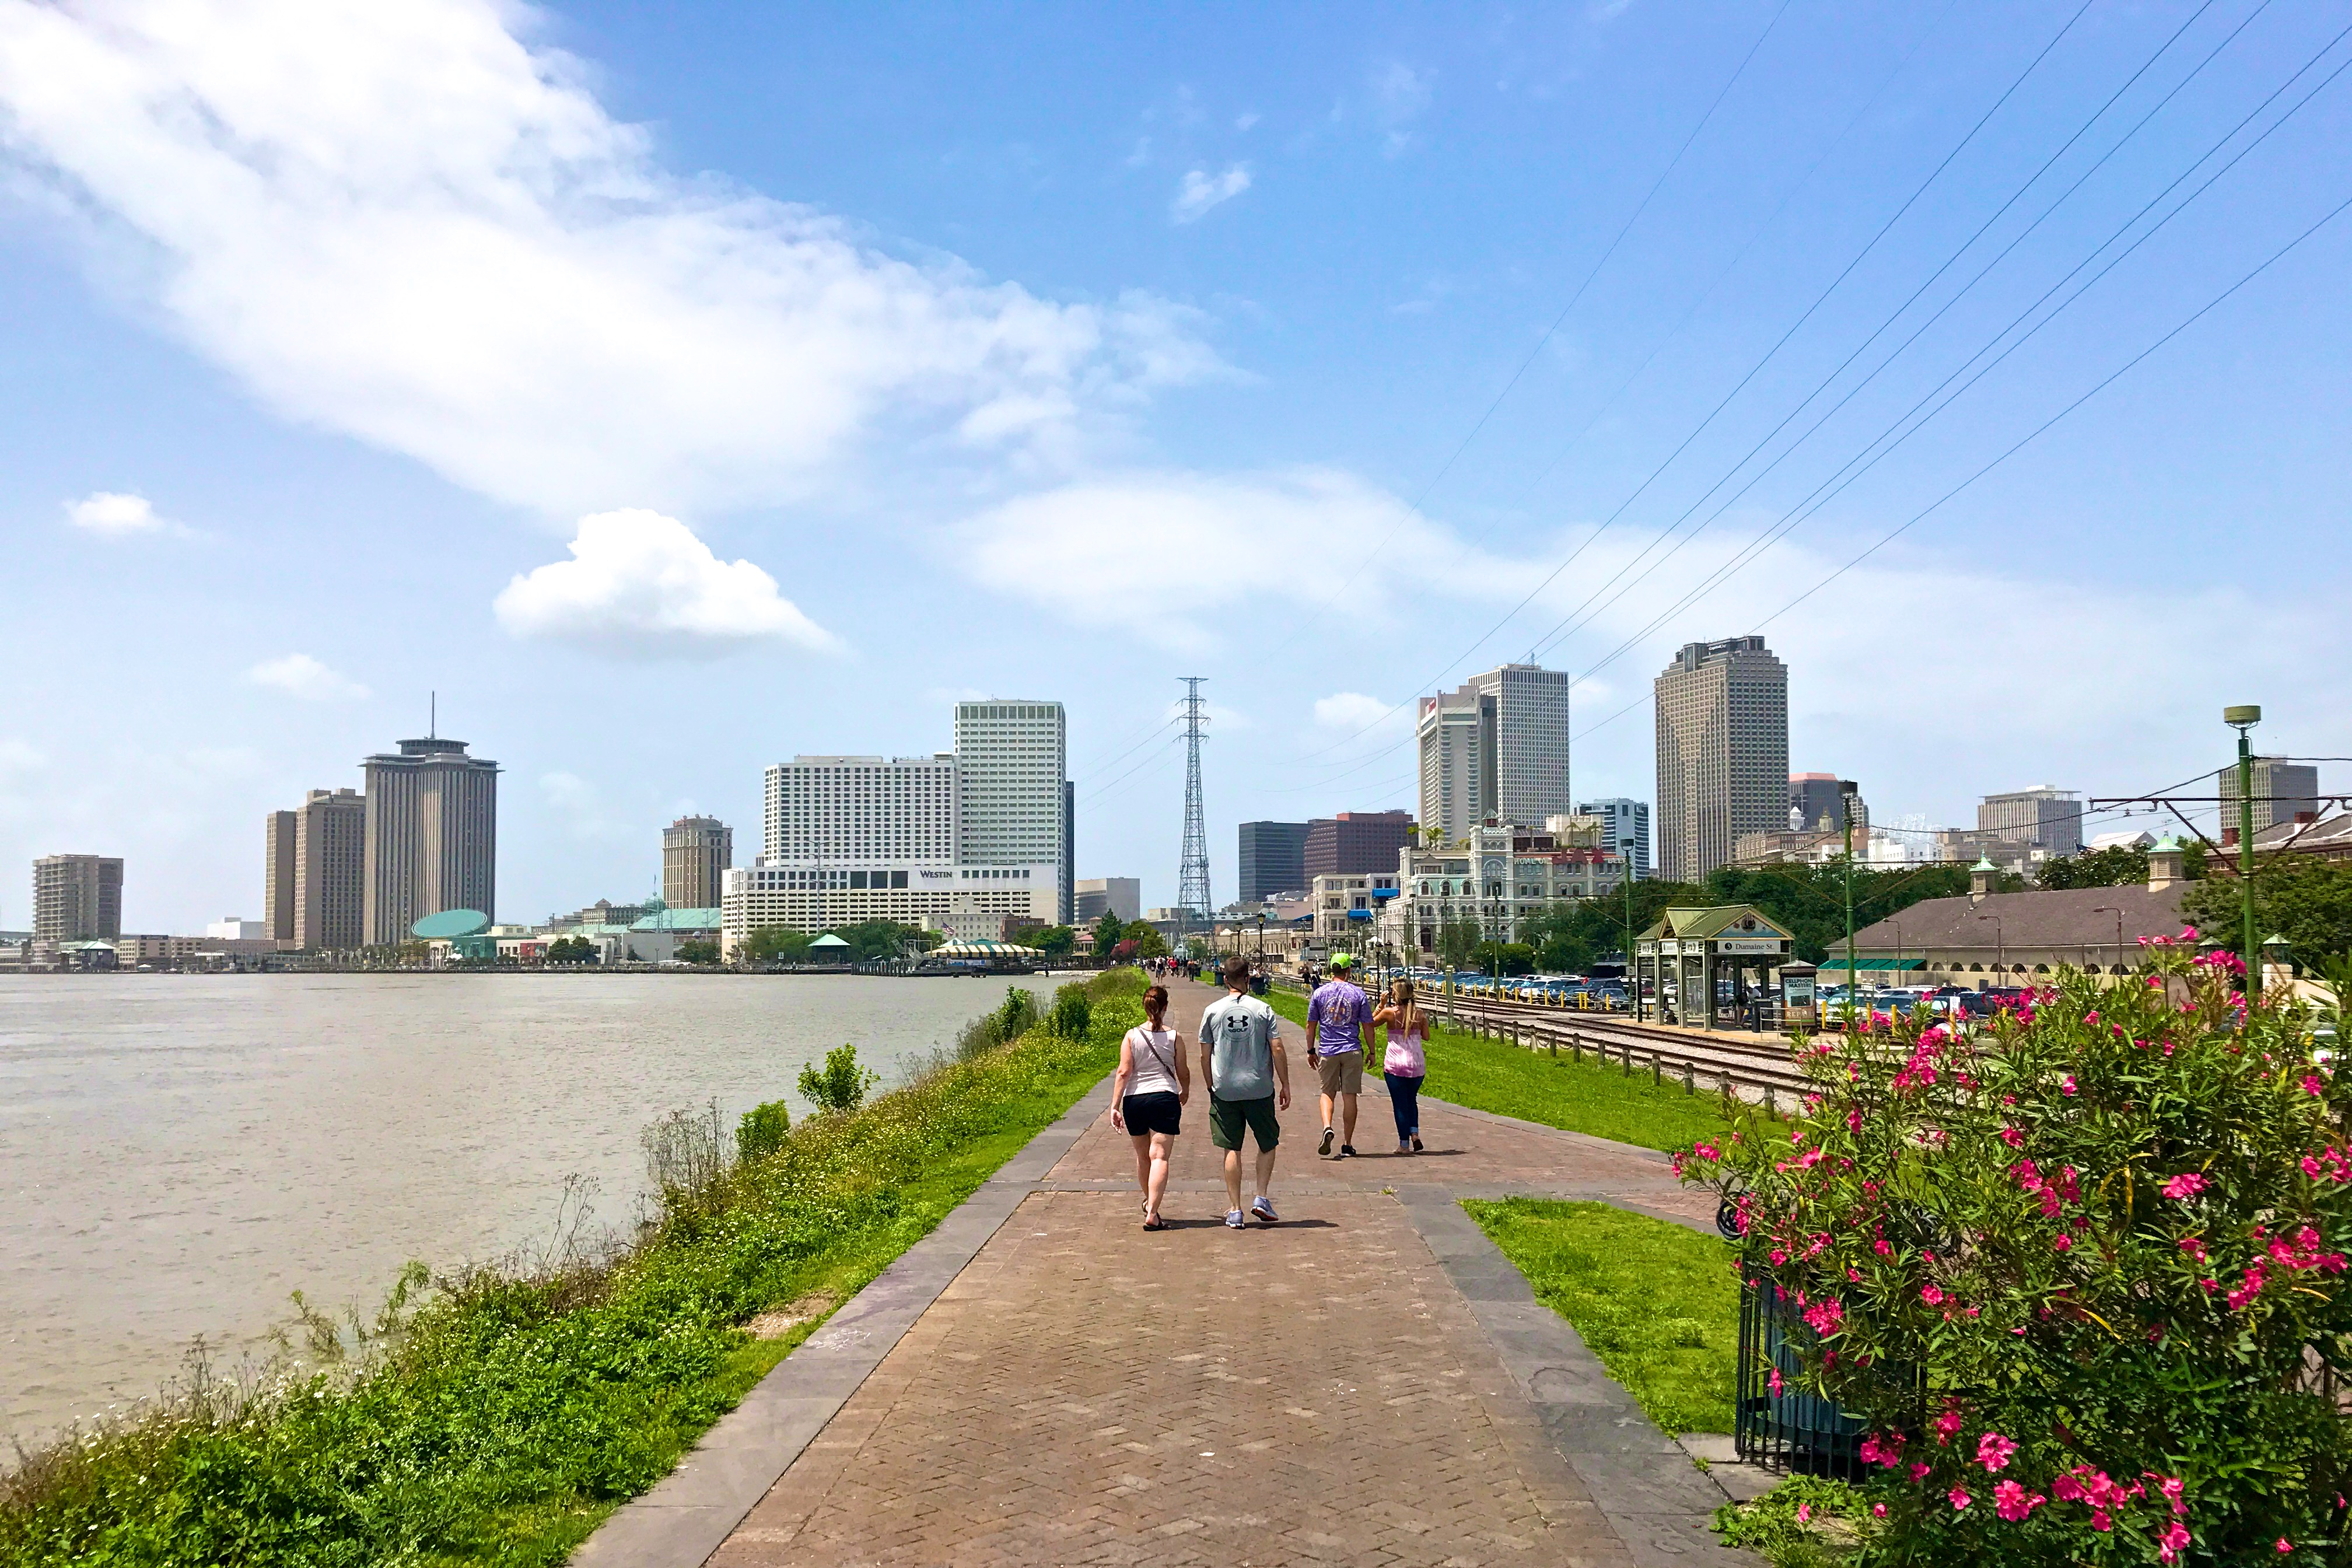 Walking along the river in New Orleans